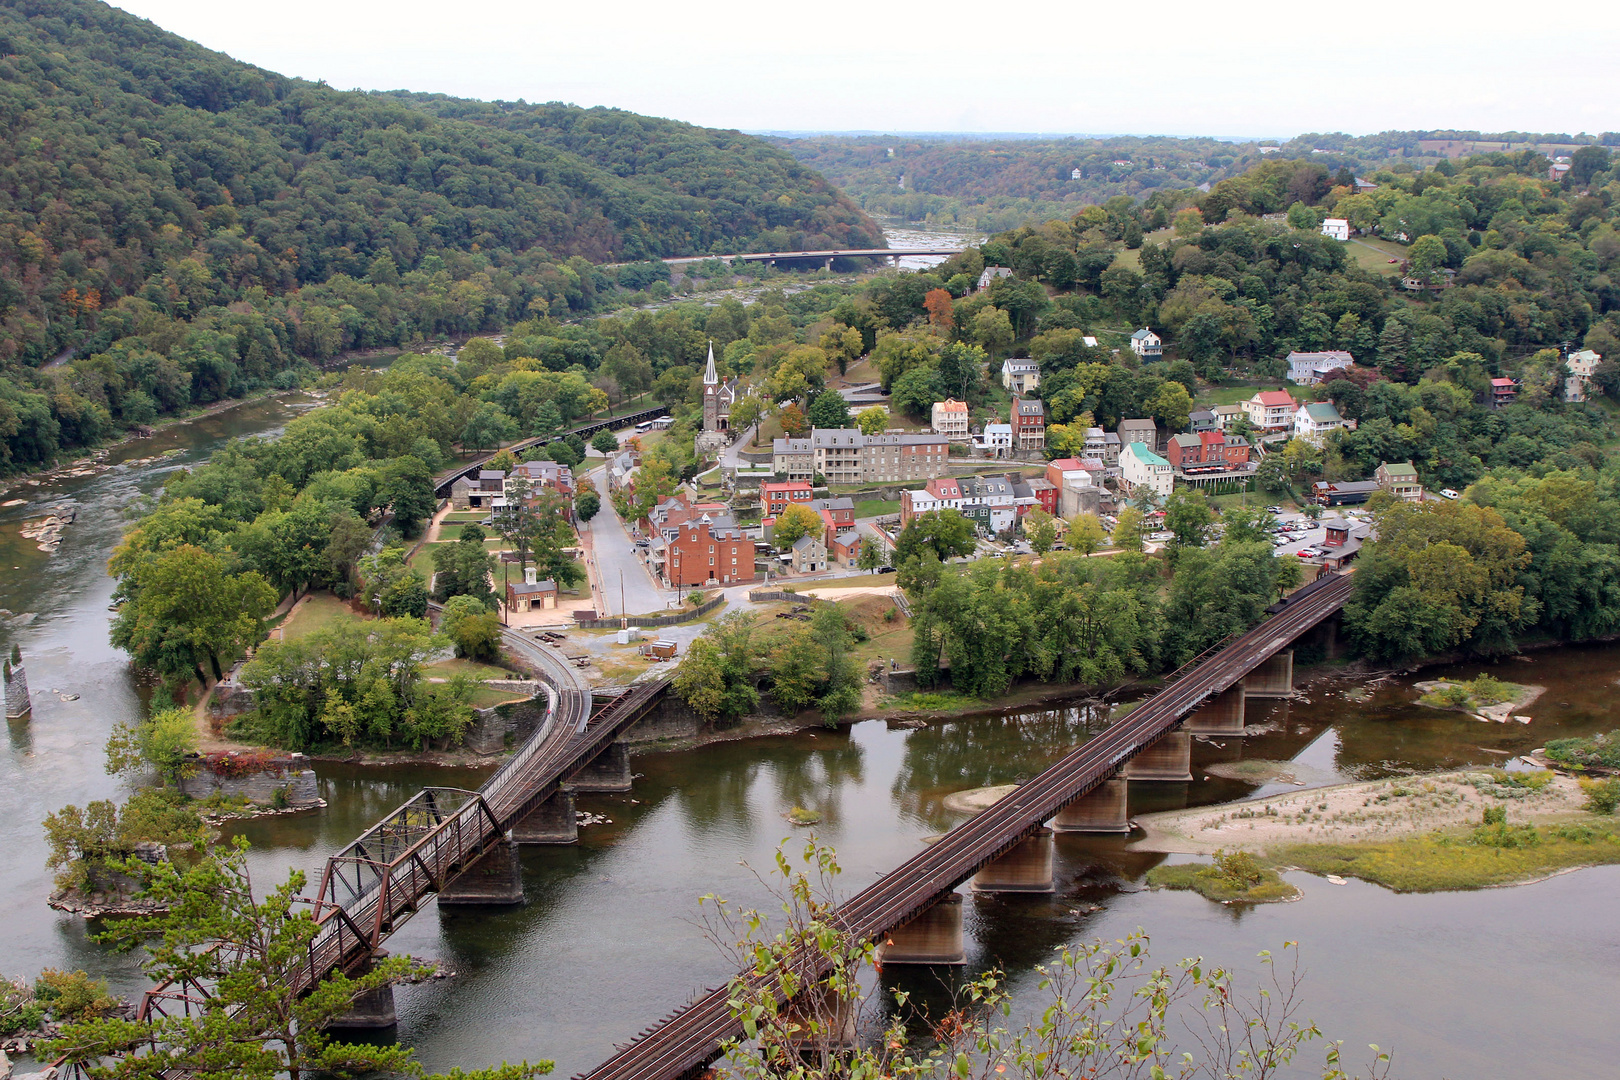 Harpers Ferry am Potomac River, West Virginia, USA